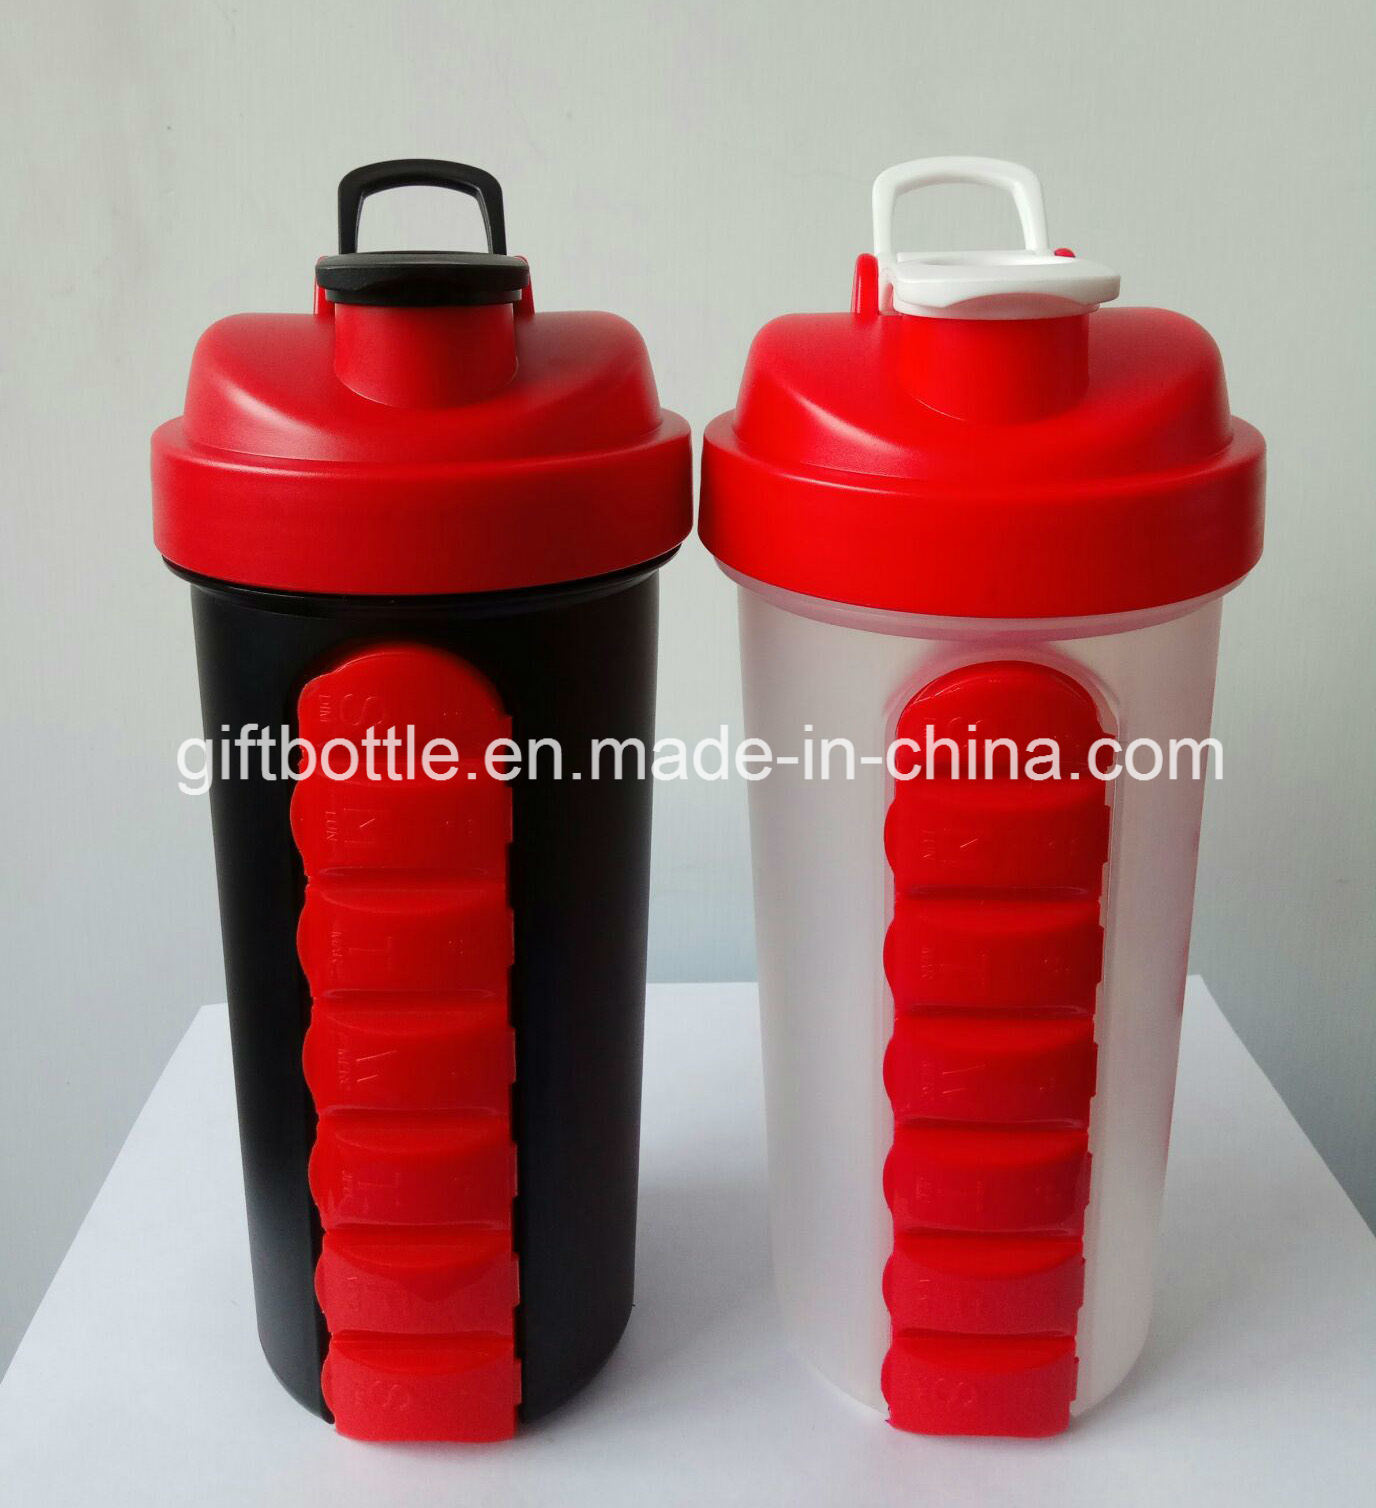 BPA Free Plastic Protein Shaker Bottle with 7 Days Pillbox